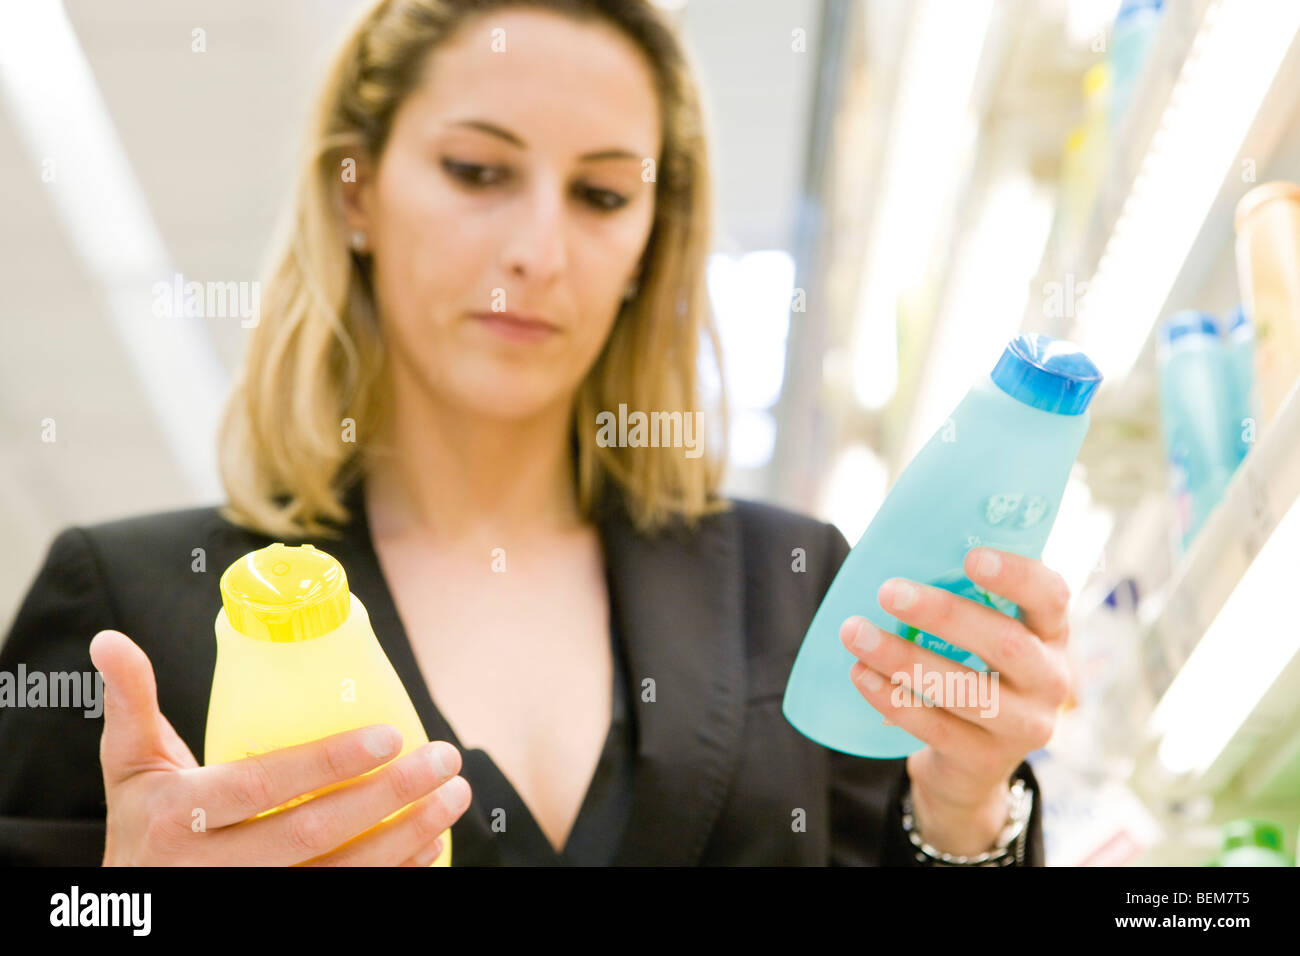 Woman comparing body care products - Stock Image